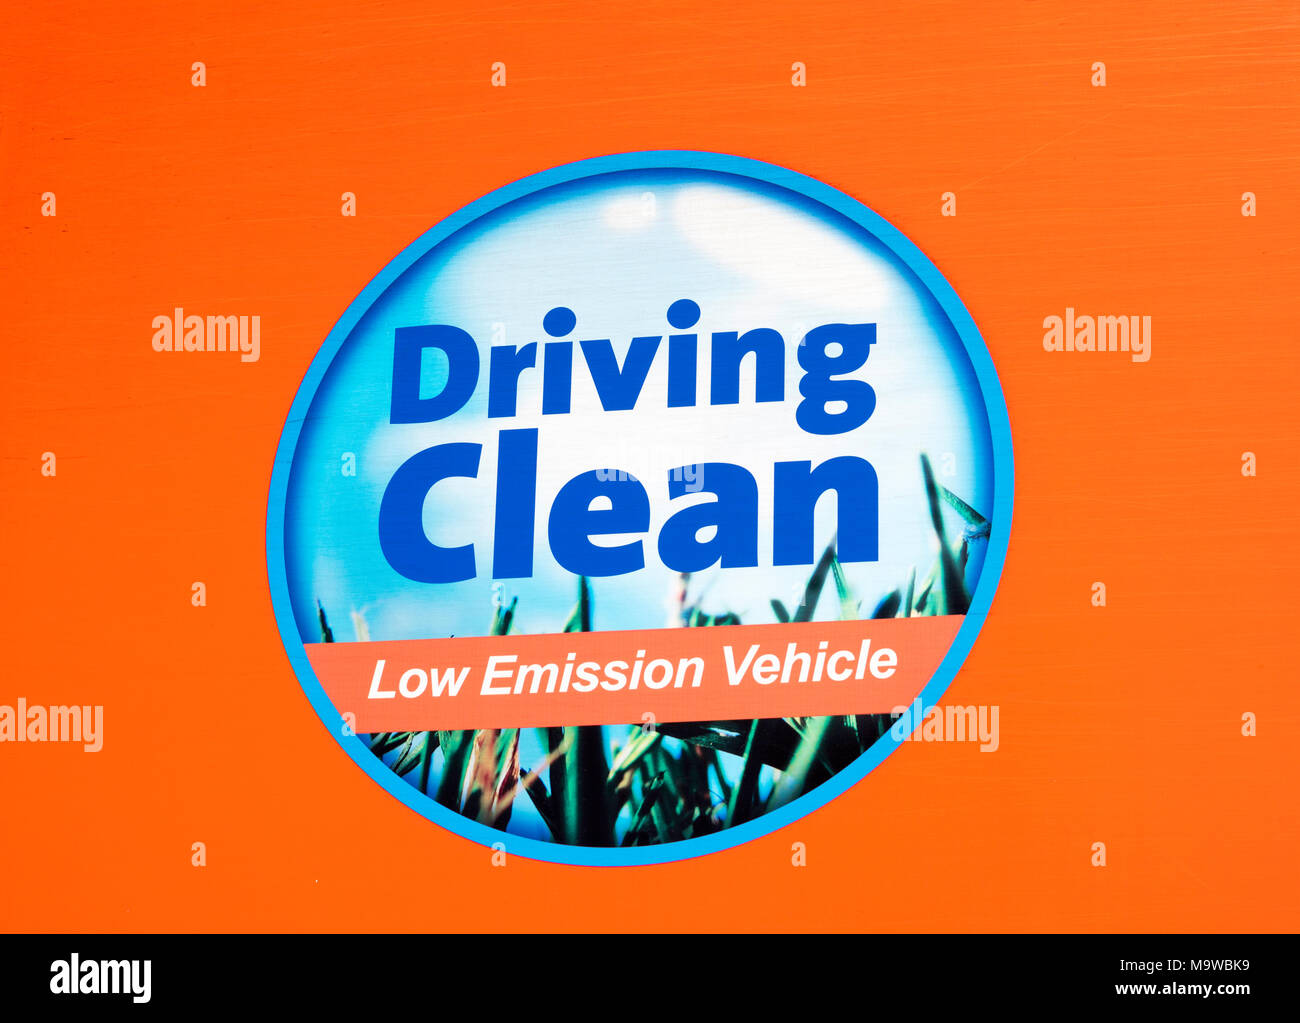 Driving Clean, Low Emission Vehicle motif on the side of a TNT delivery truck, England, UK - Stock Image